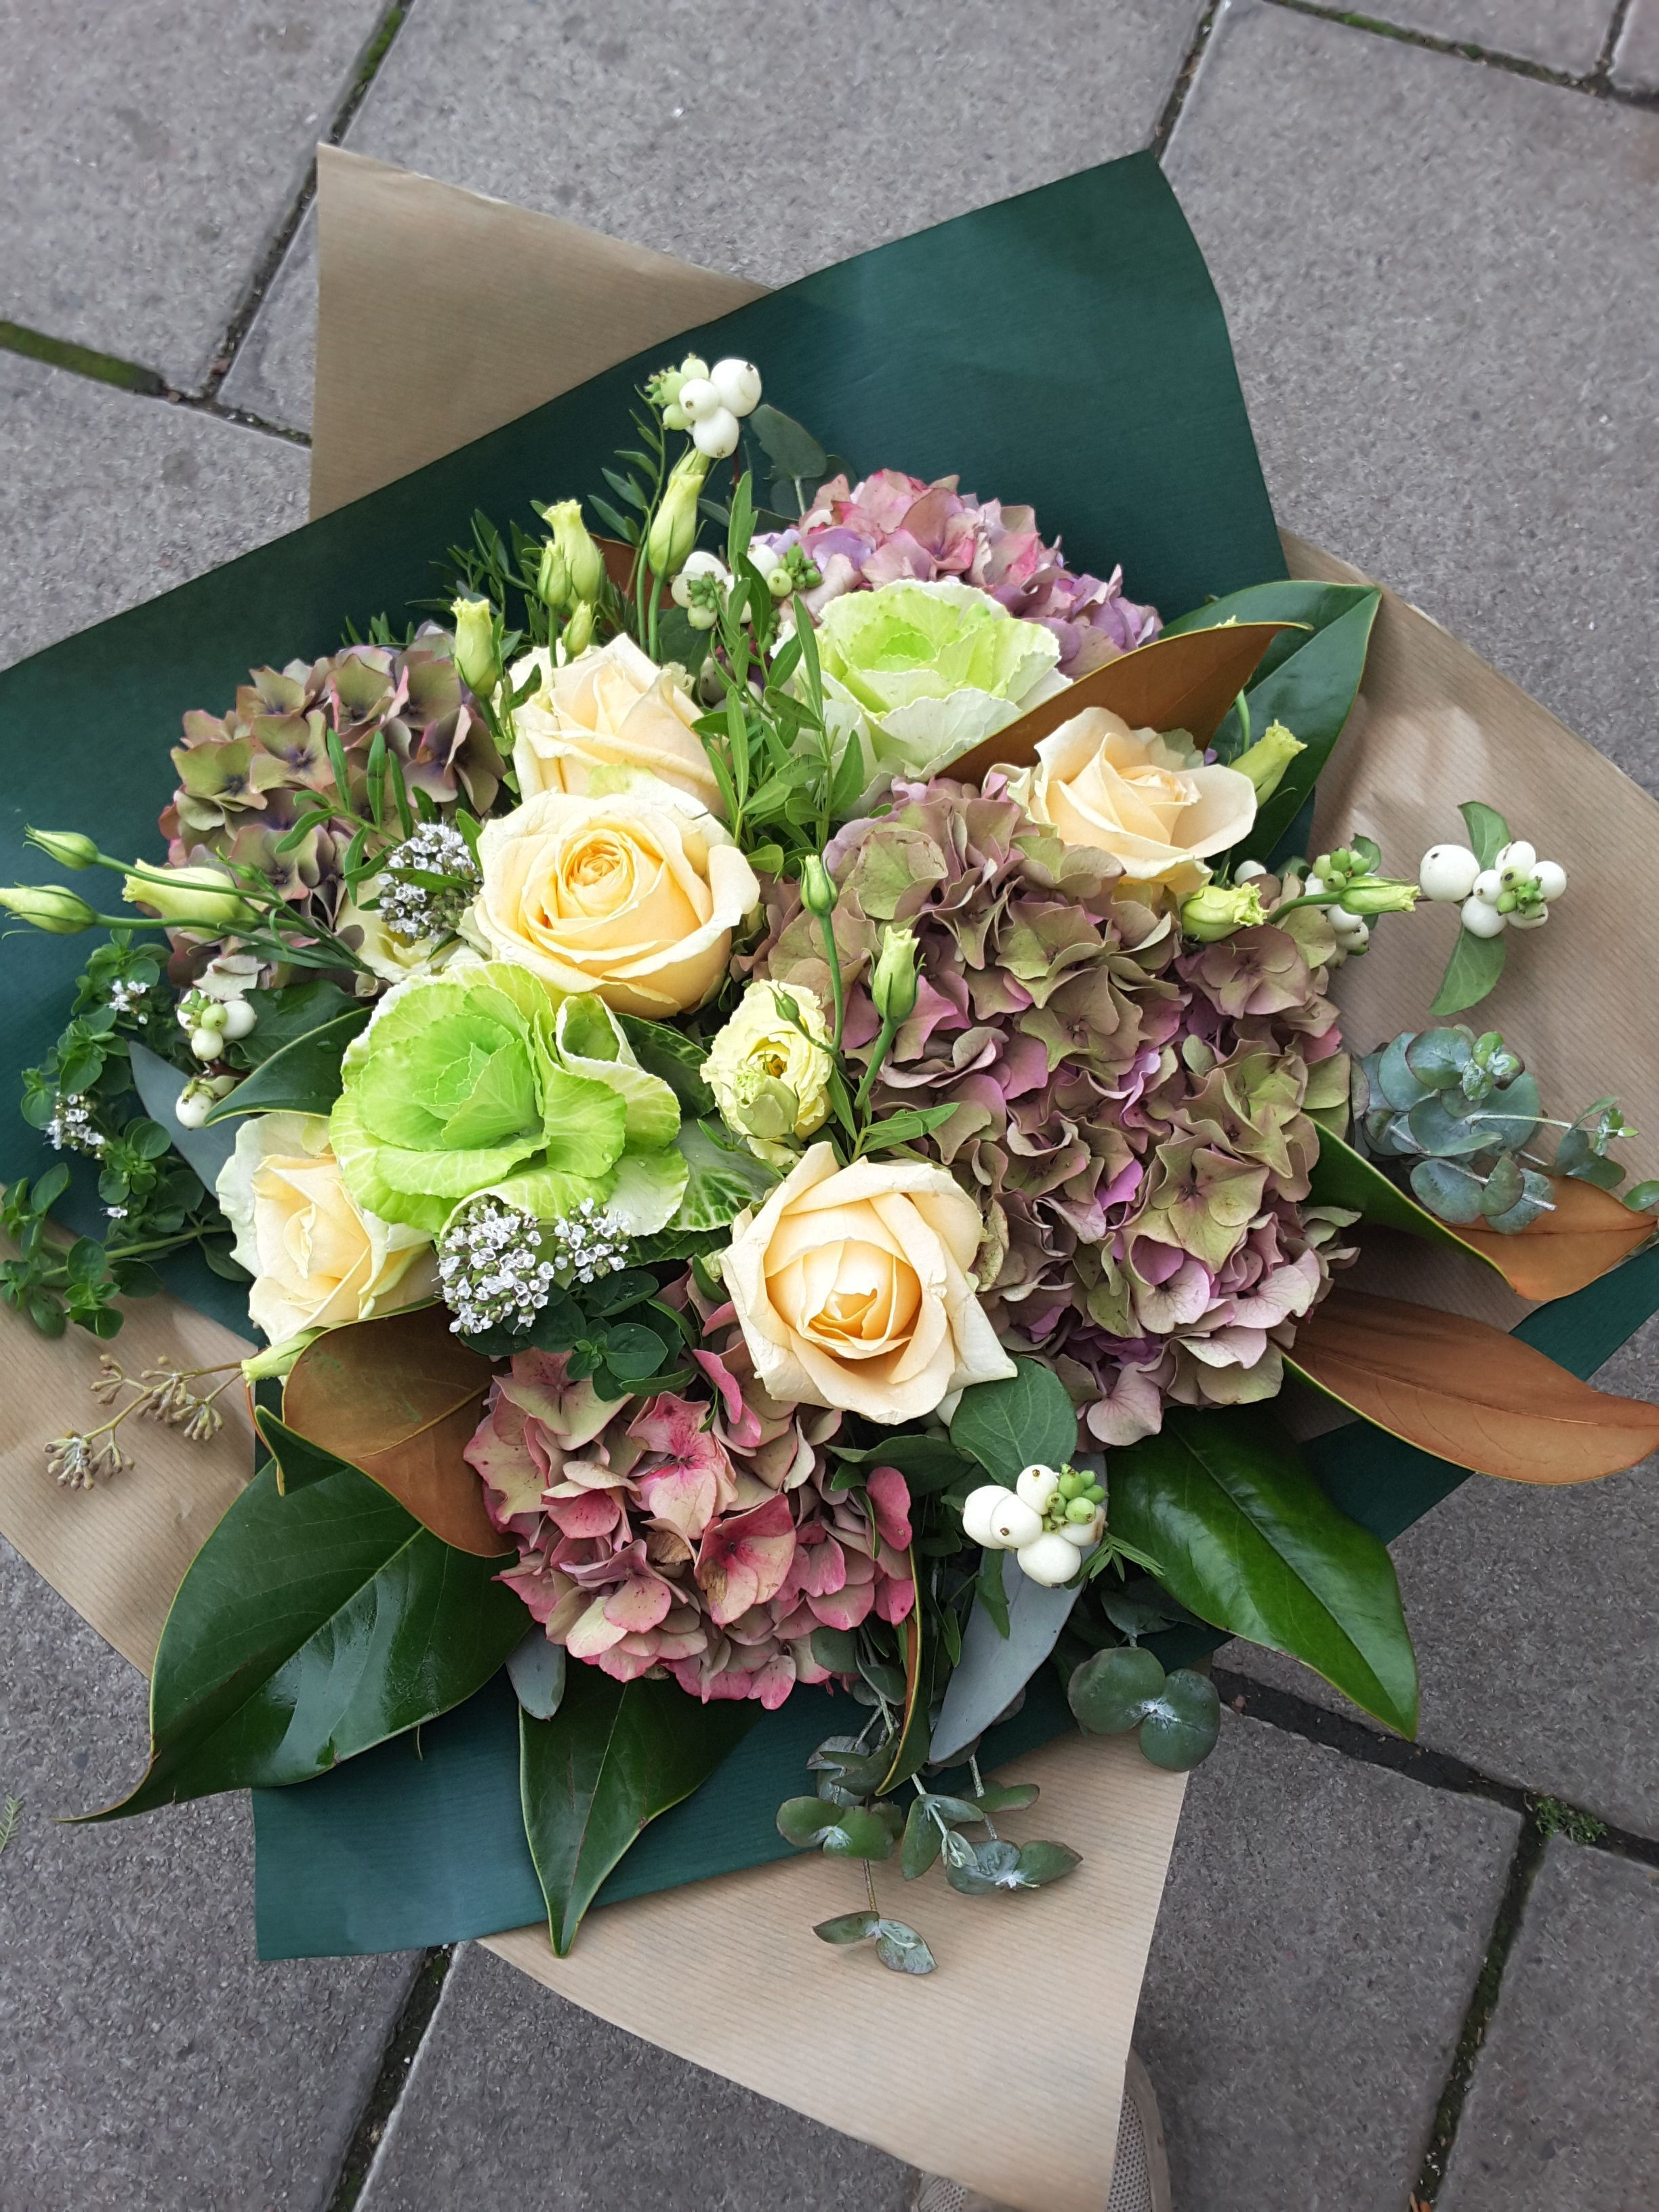 Autumnal bouquet of pale cream Roses, green Cabbages and